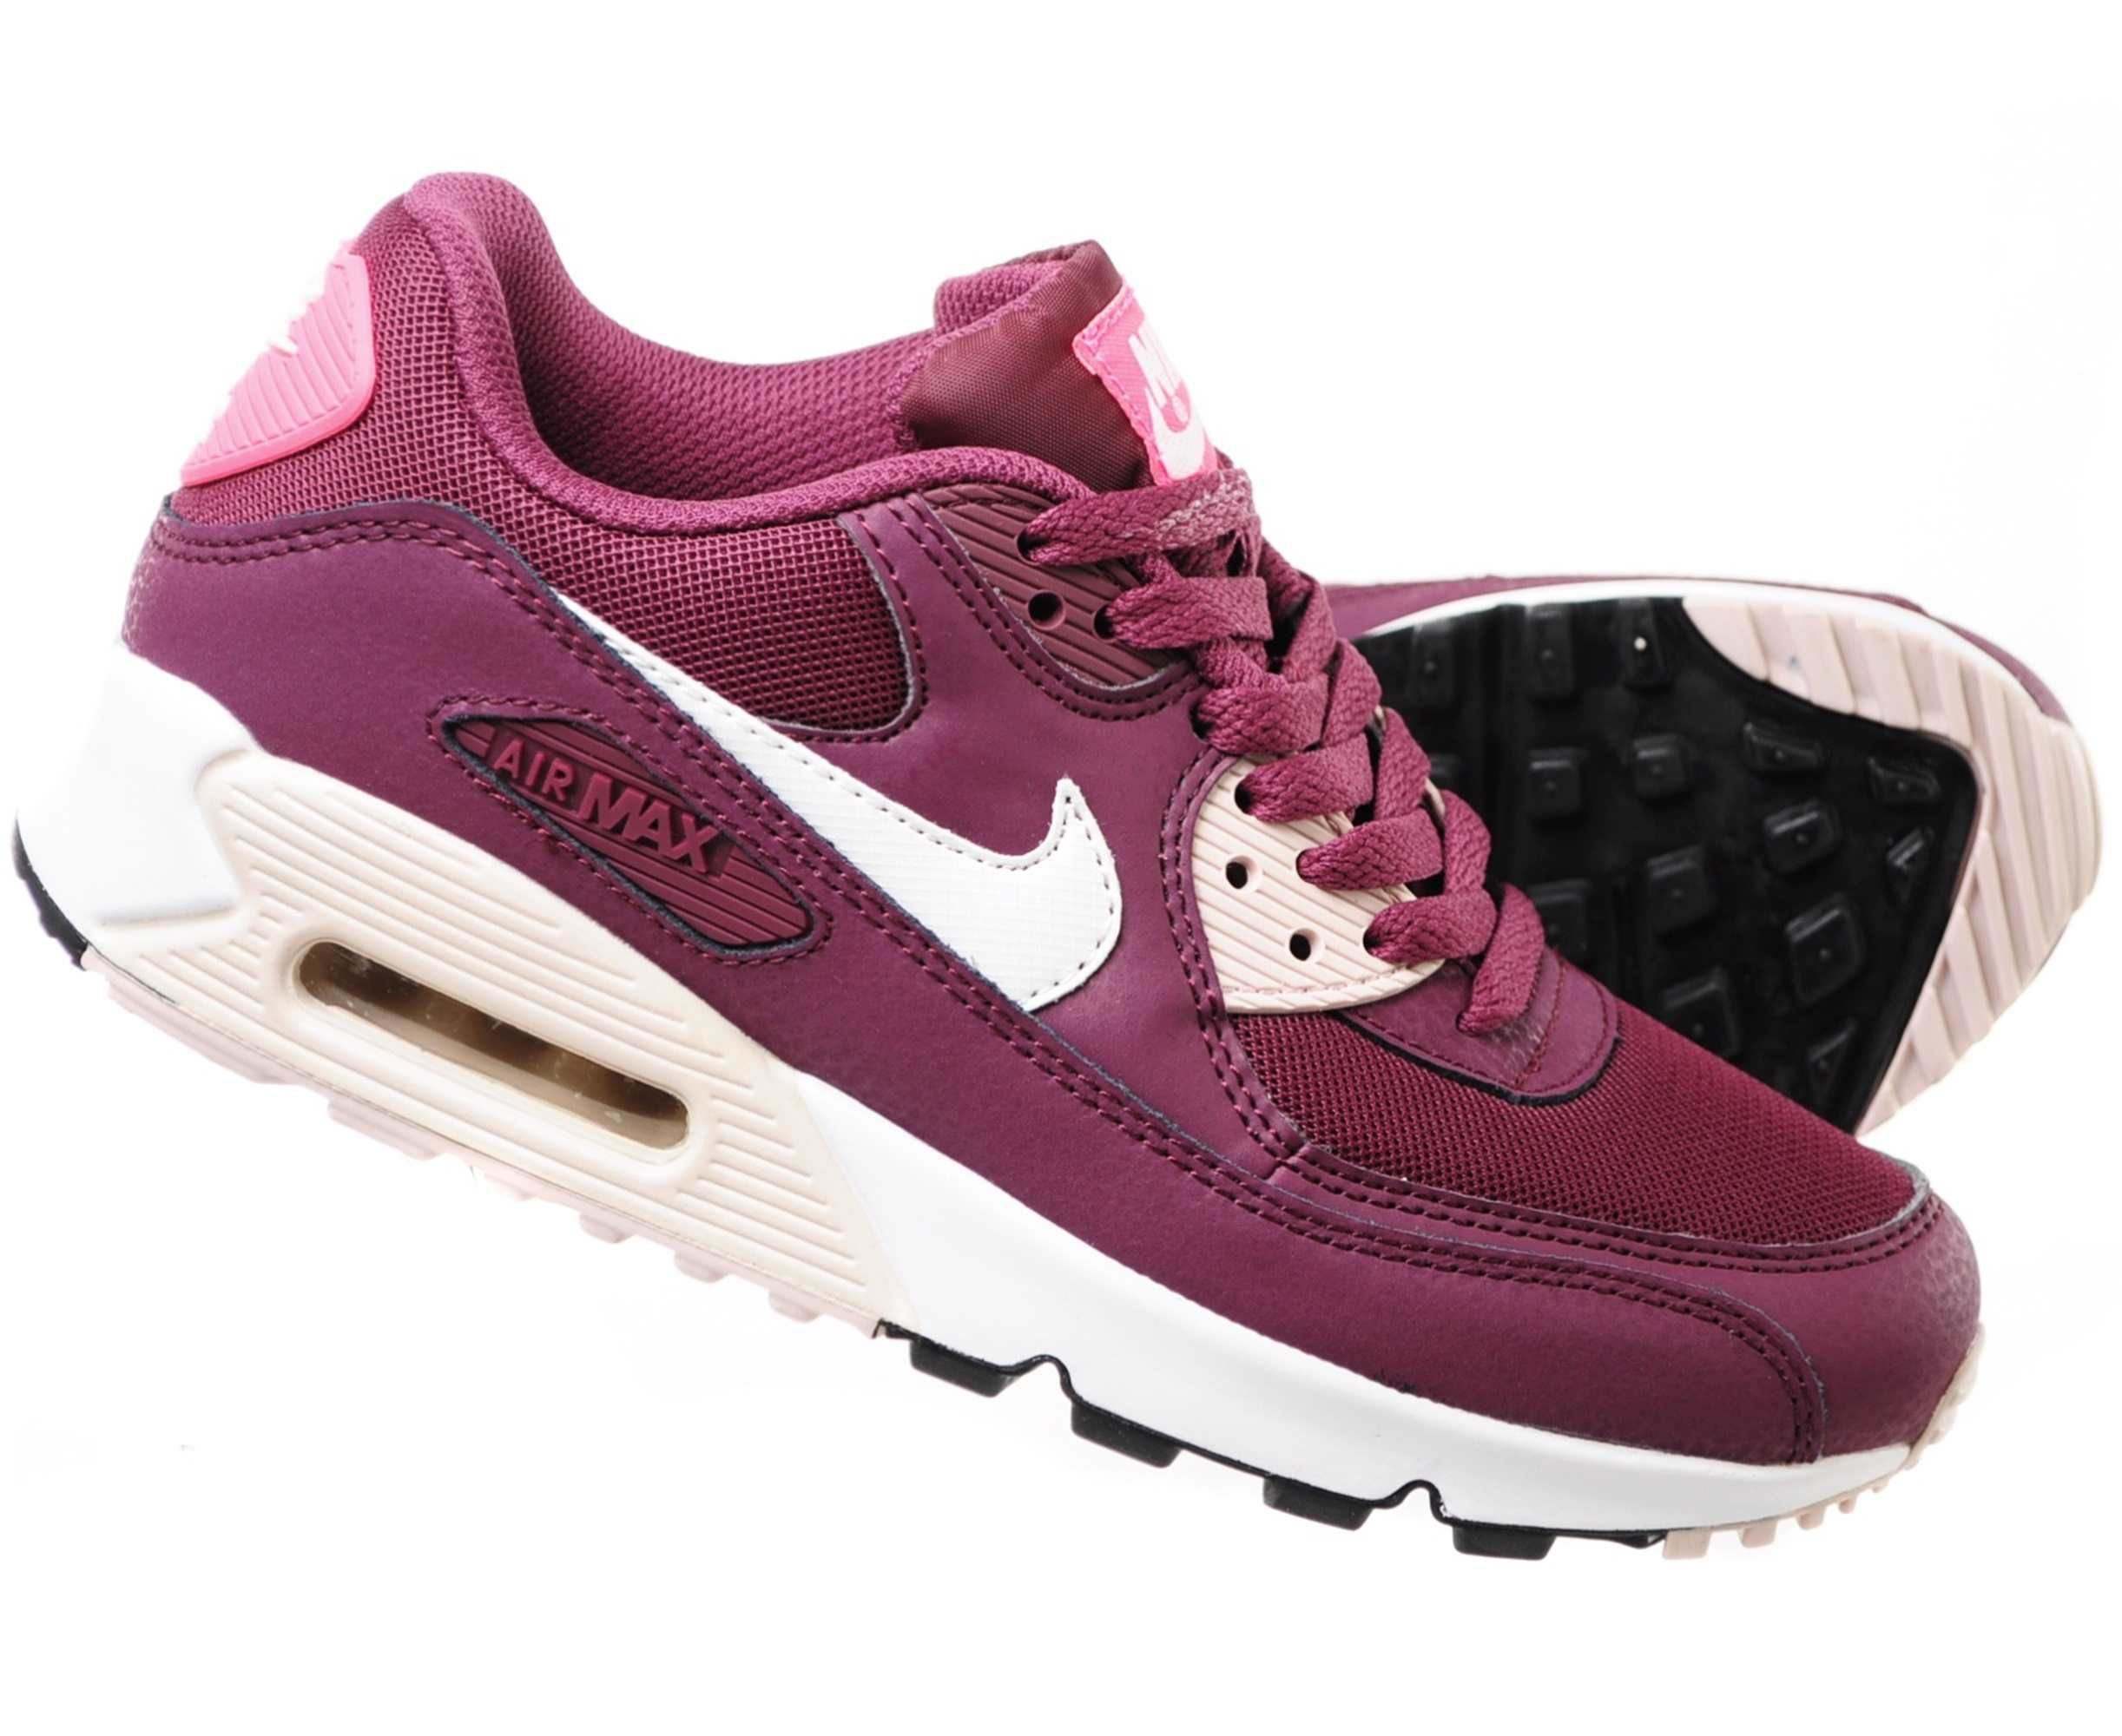 check out 8fd6b 5022e Nike Air Max 90 Essential Buty Damskie 38